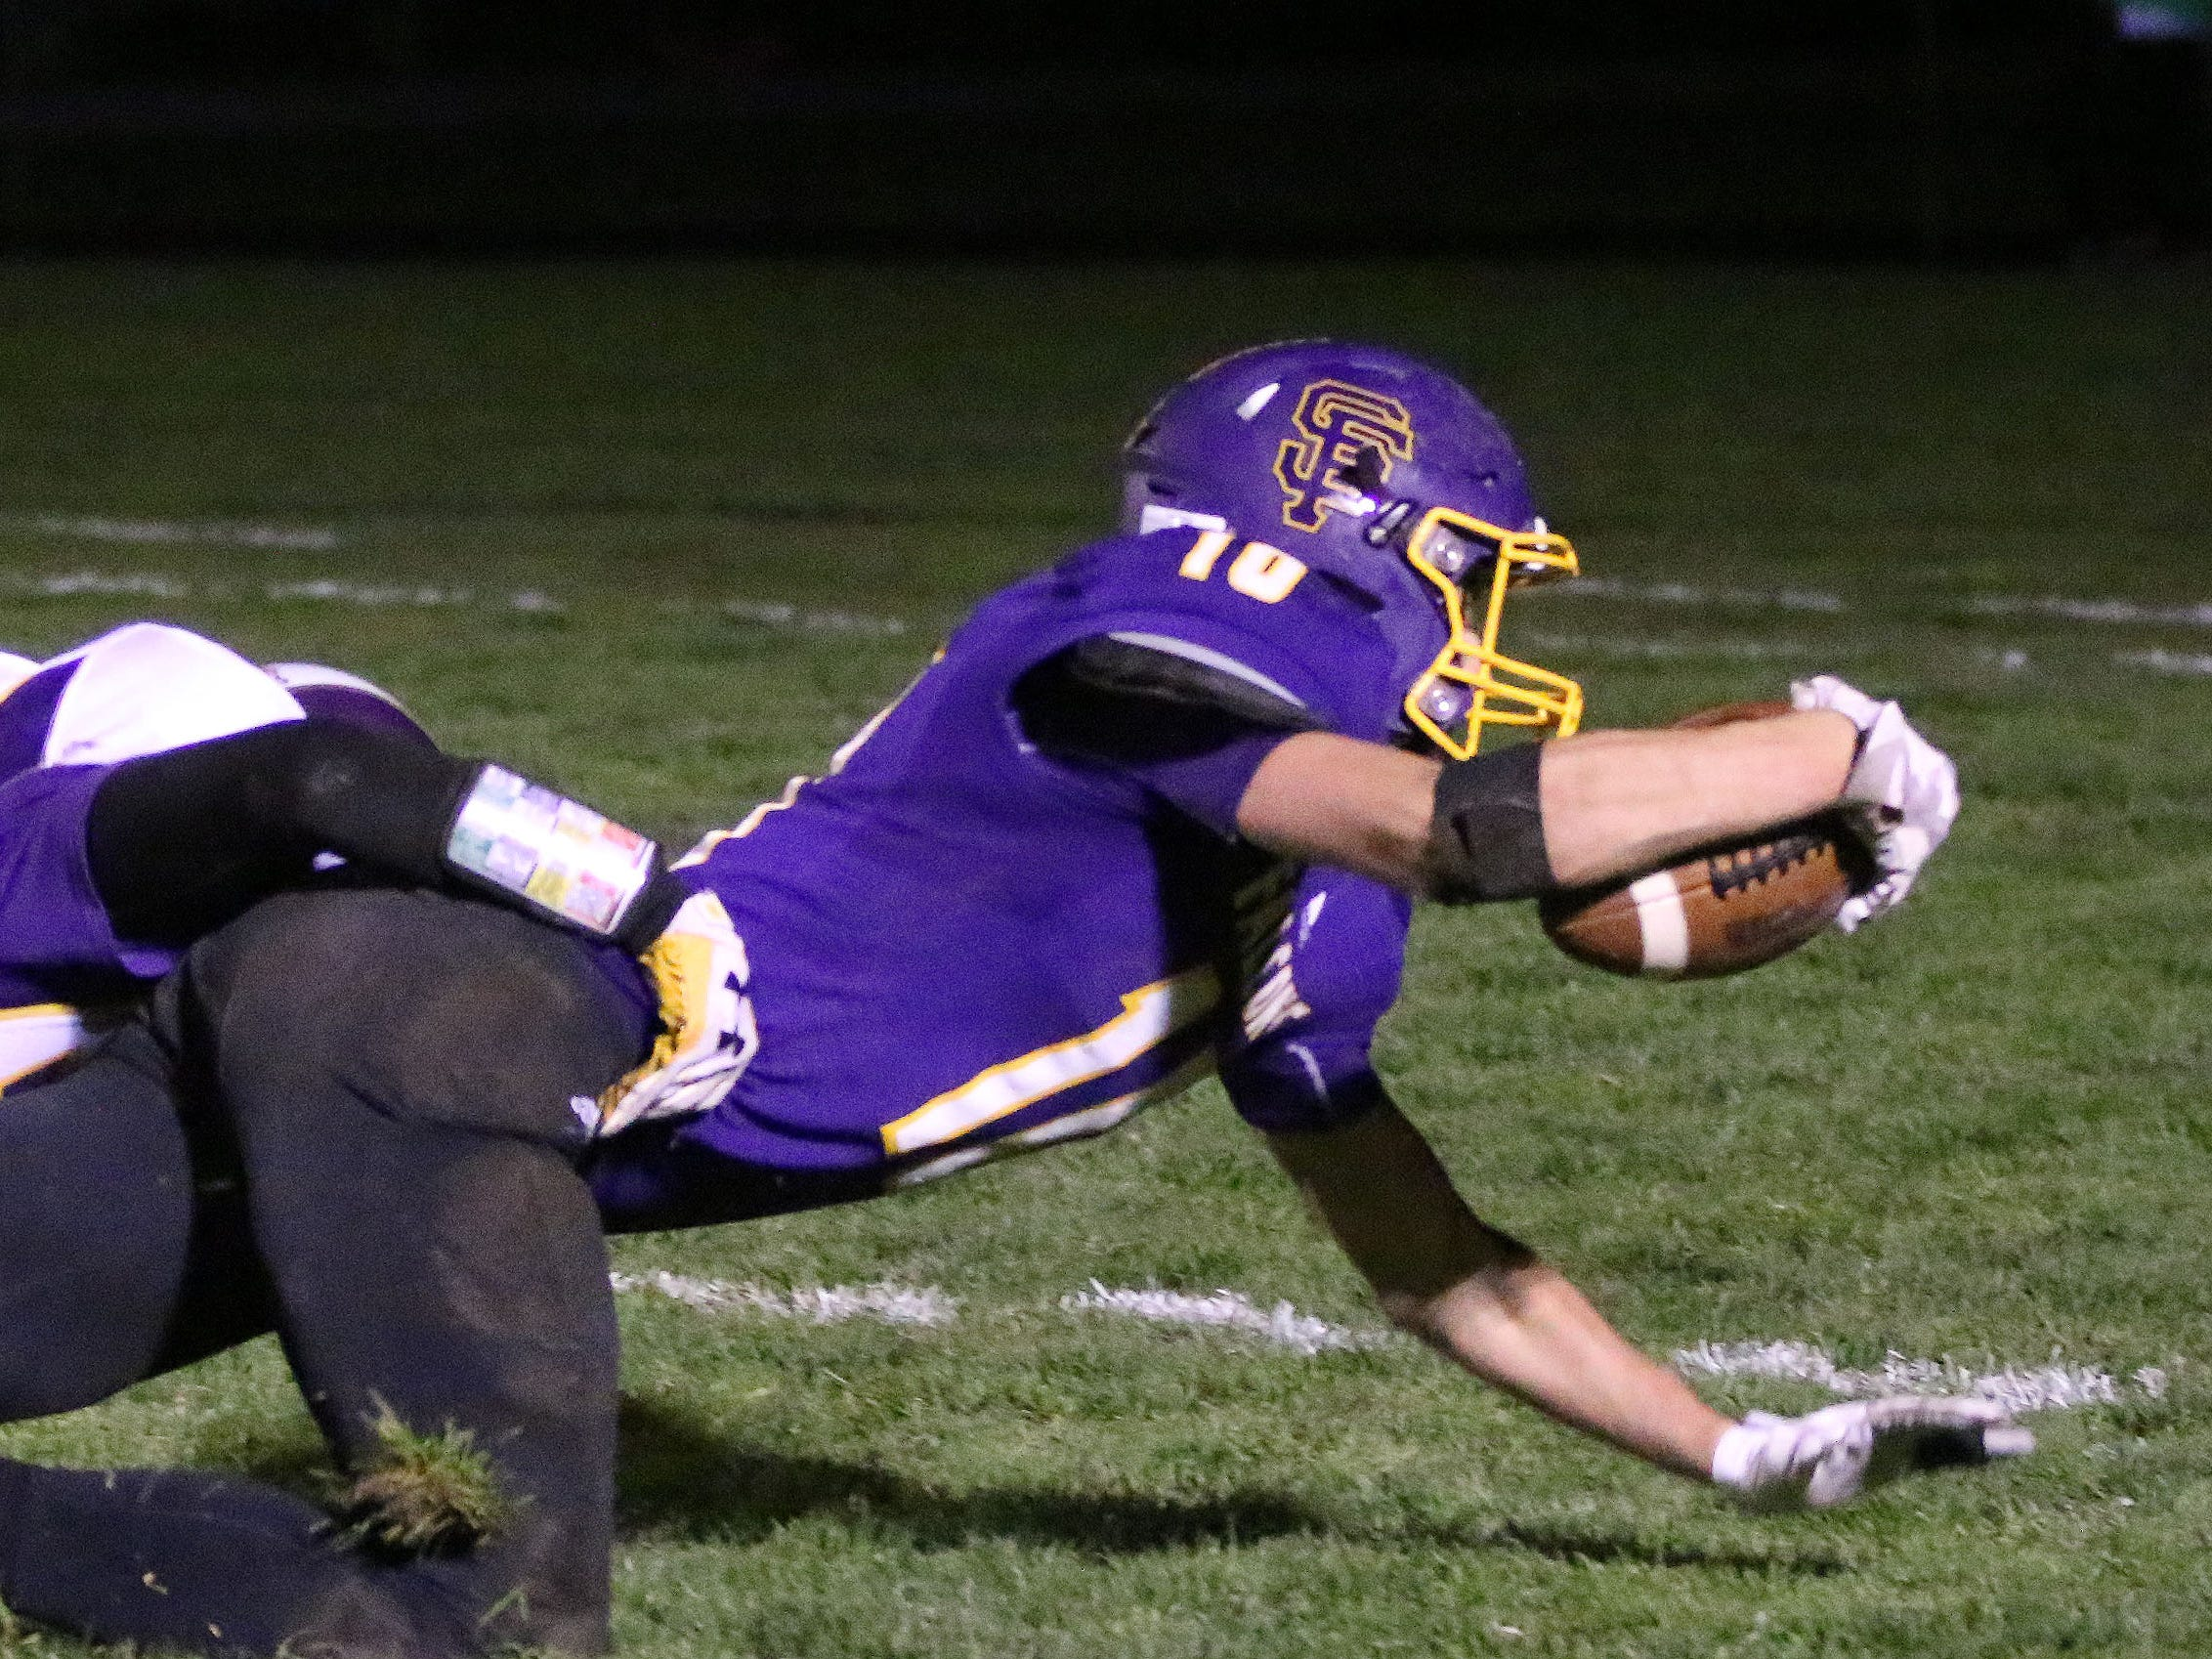 Sheboygan Falls' Justin Tenpas (10) stretches to gain yardage by Two River's Logan Perry (27), Friday, October 12, 2018, in Sheboygan Falls, Wis.